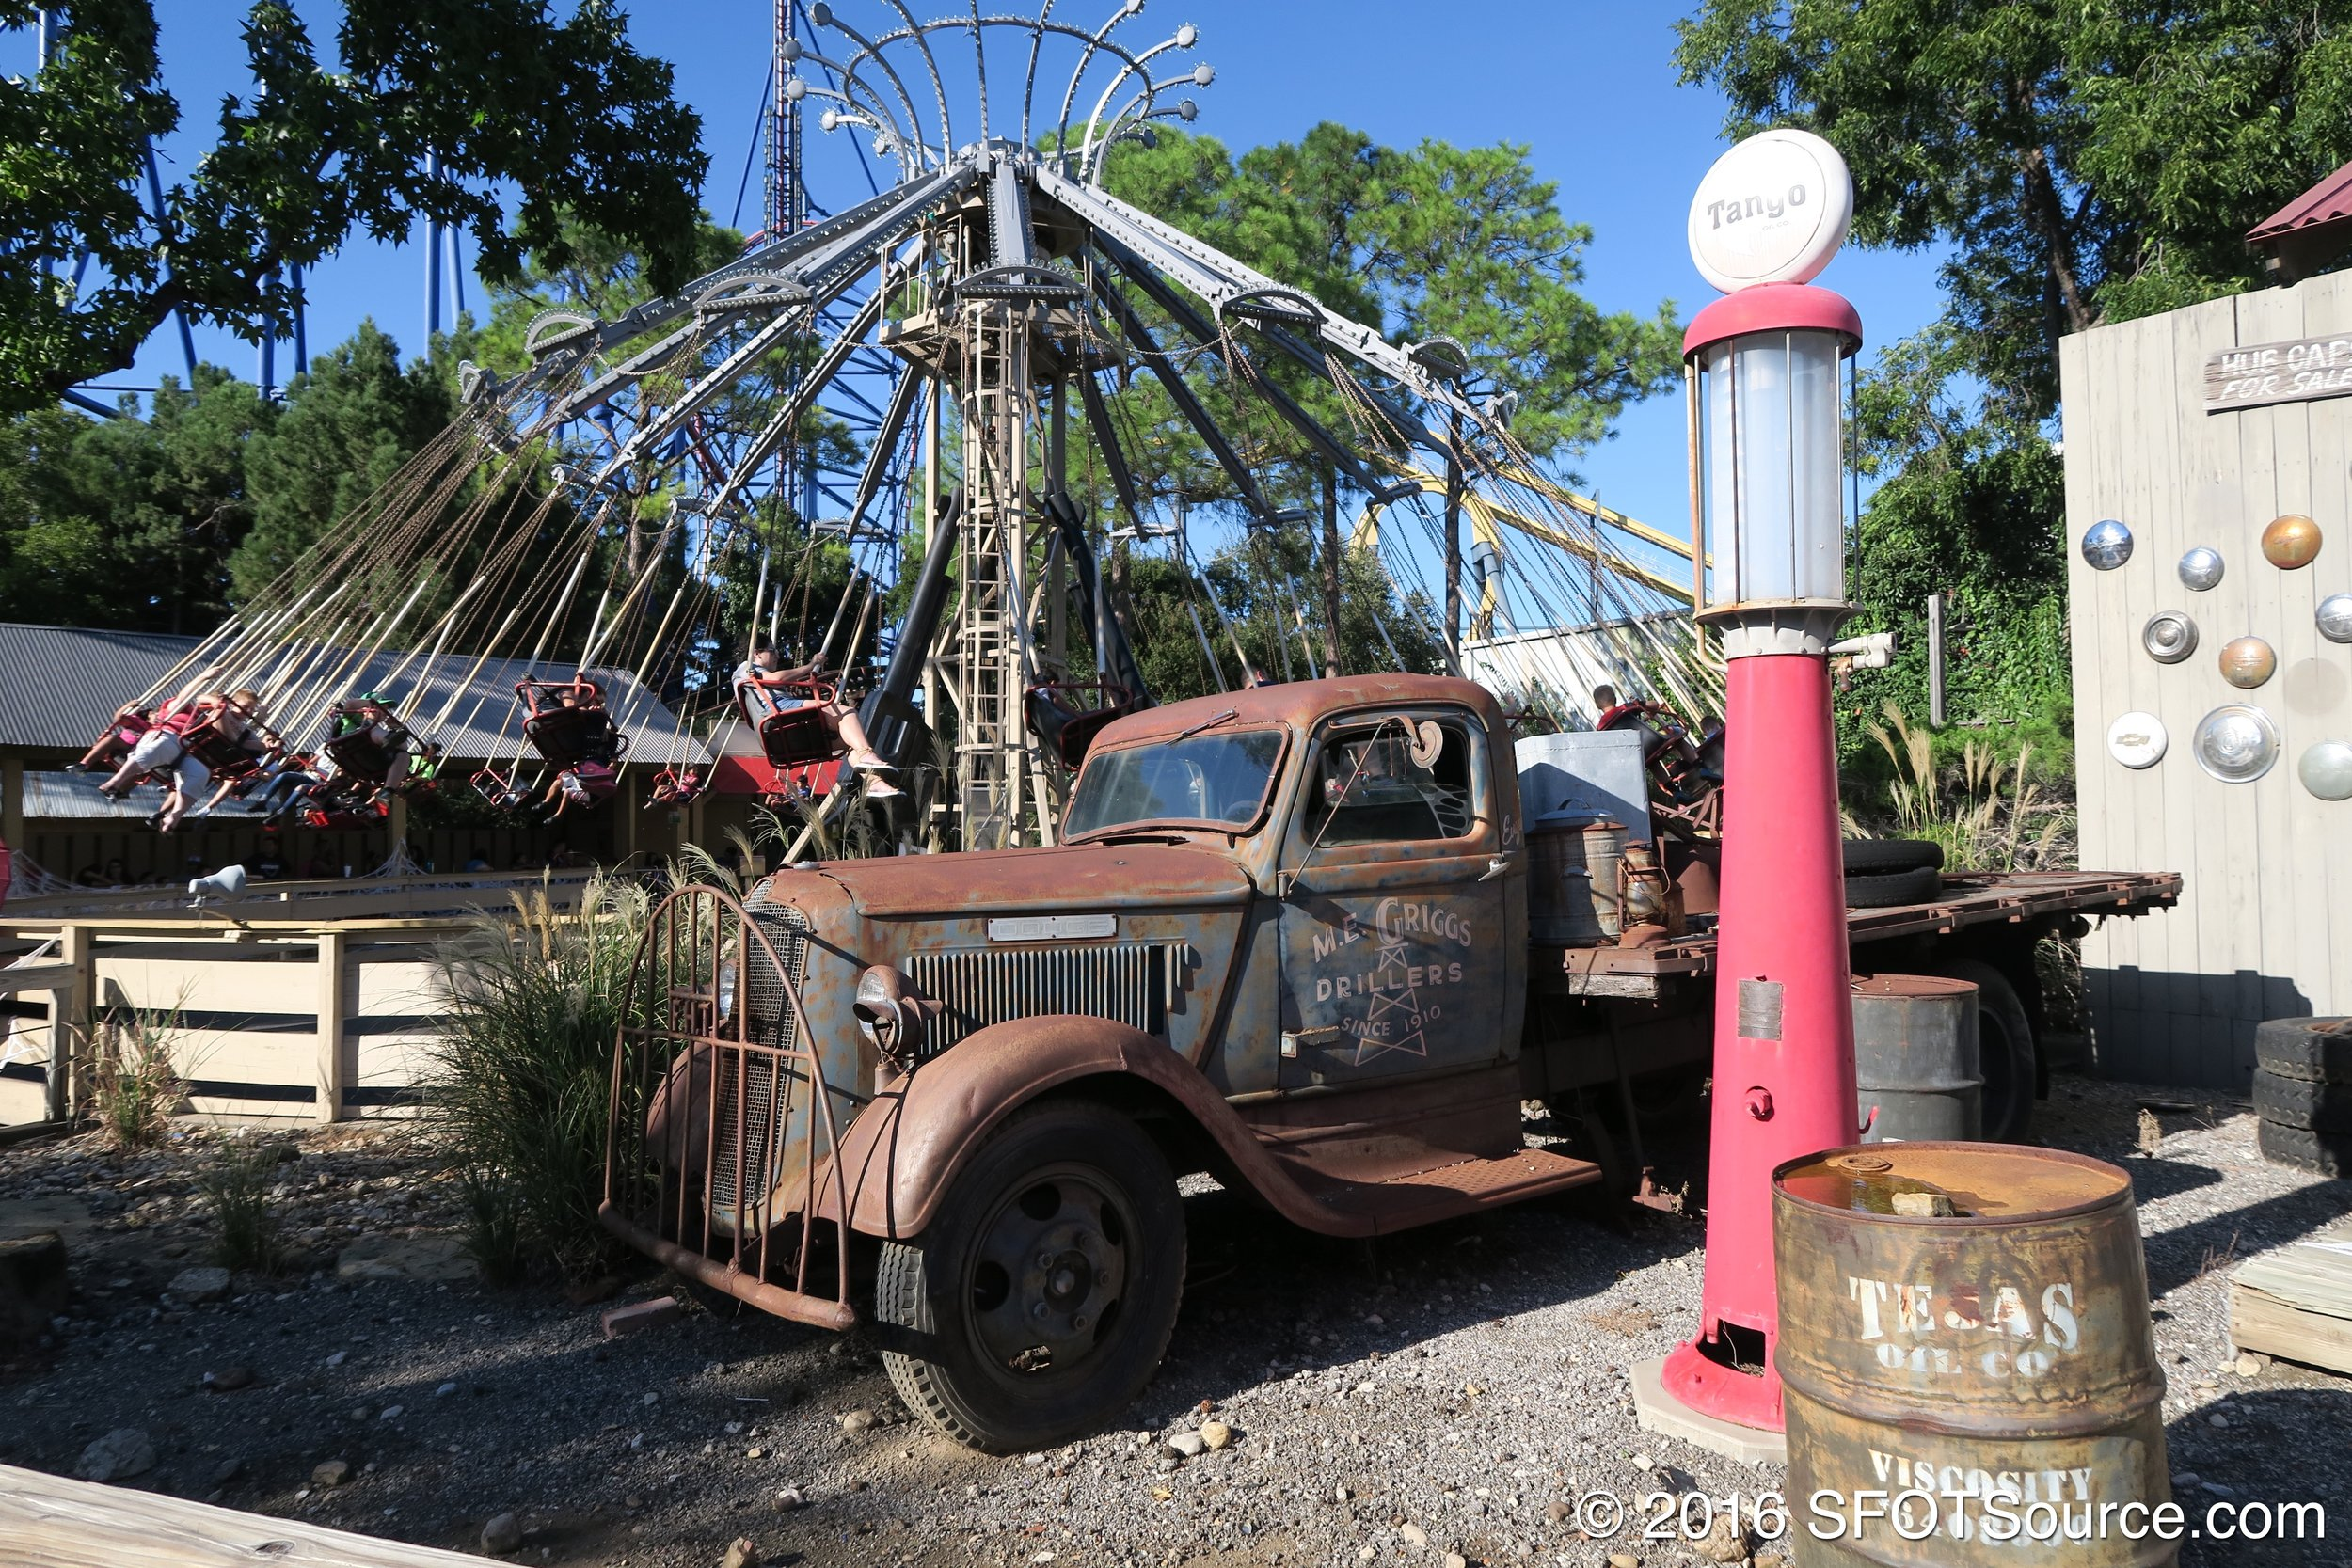 The ride is situated in the park's Boomtown section.